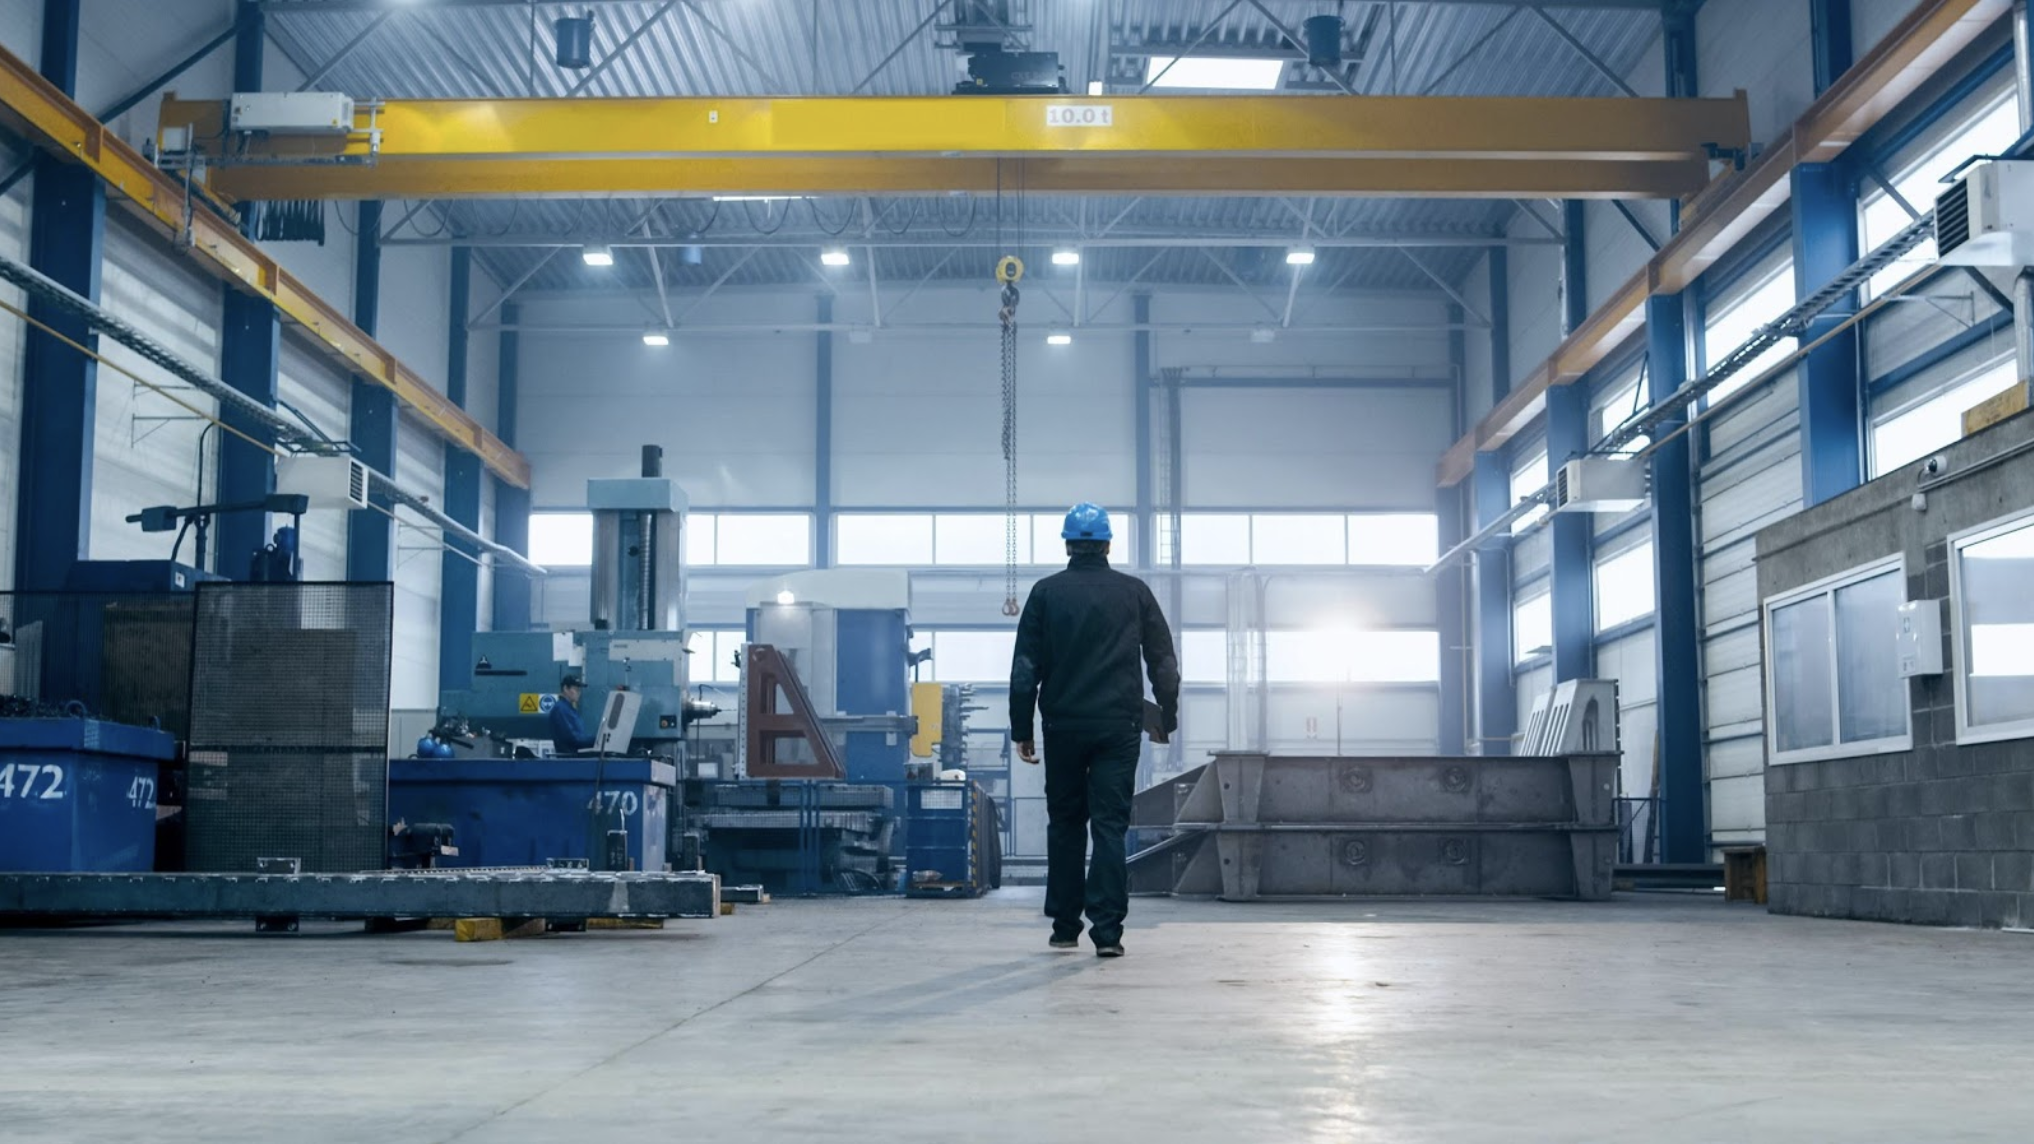 a man in a hardhat walks through an industrial production warehouse